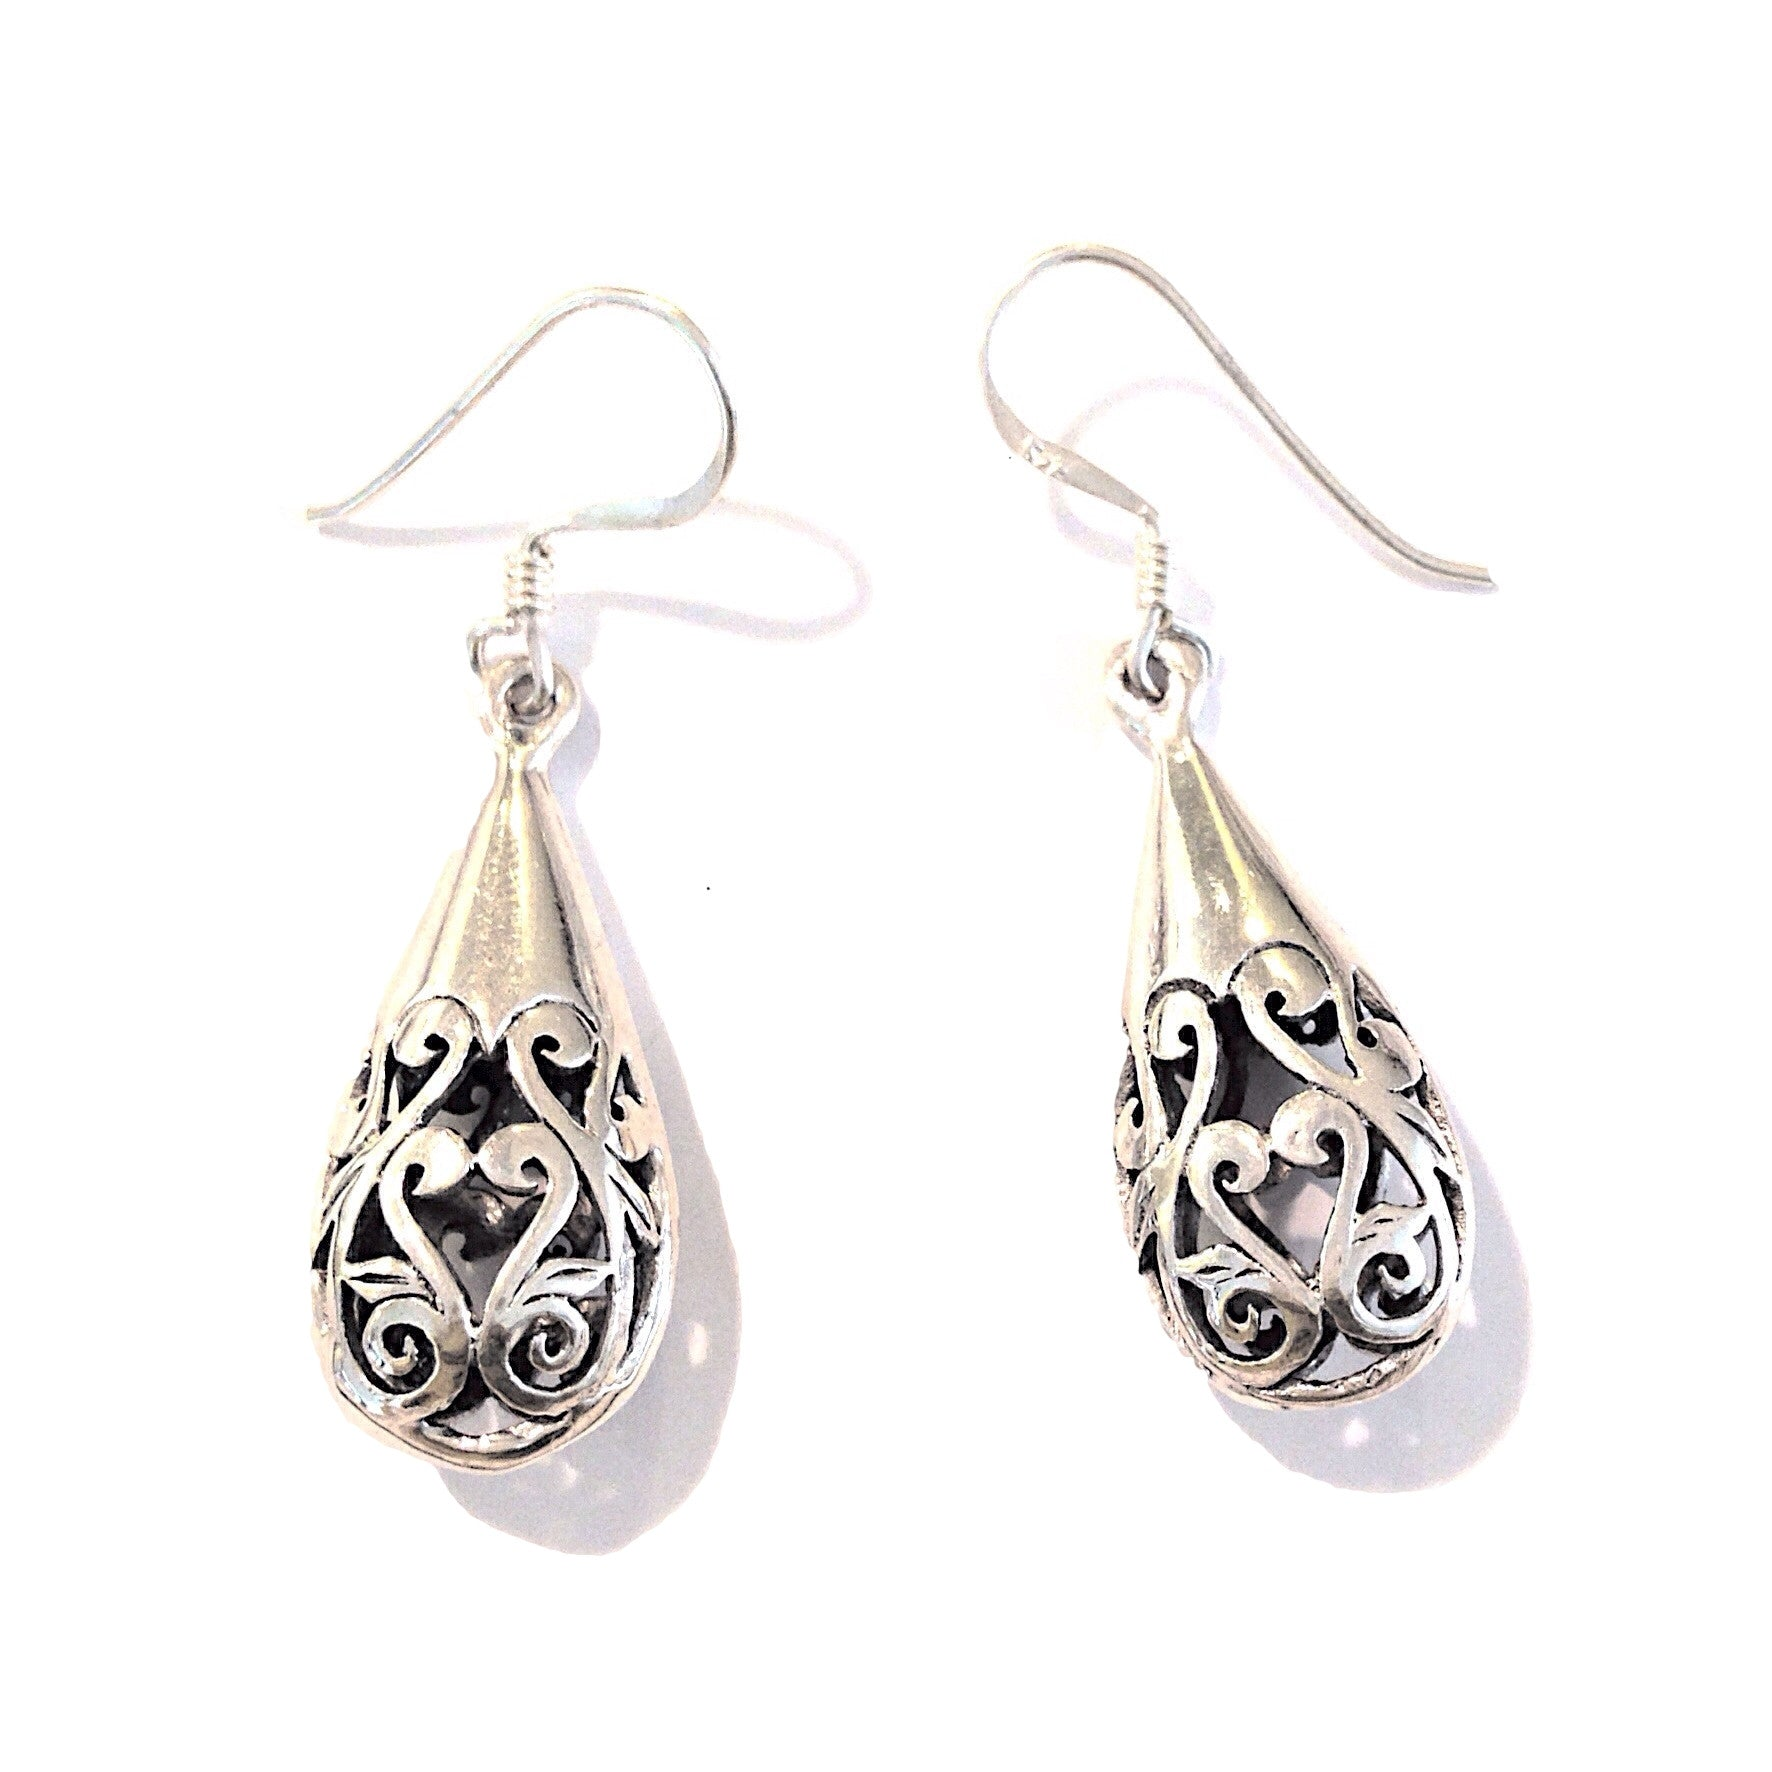 Carved Teardrop Earrings, $22 | Sterling Silver Filigree Drops | Light Years Jewelry